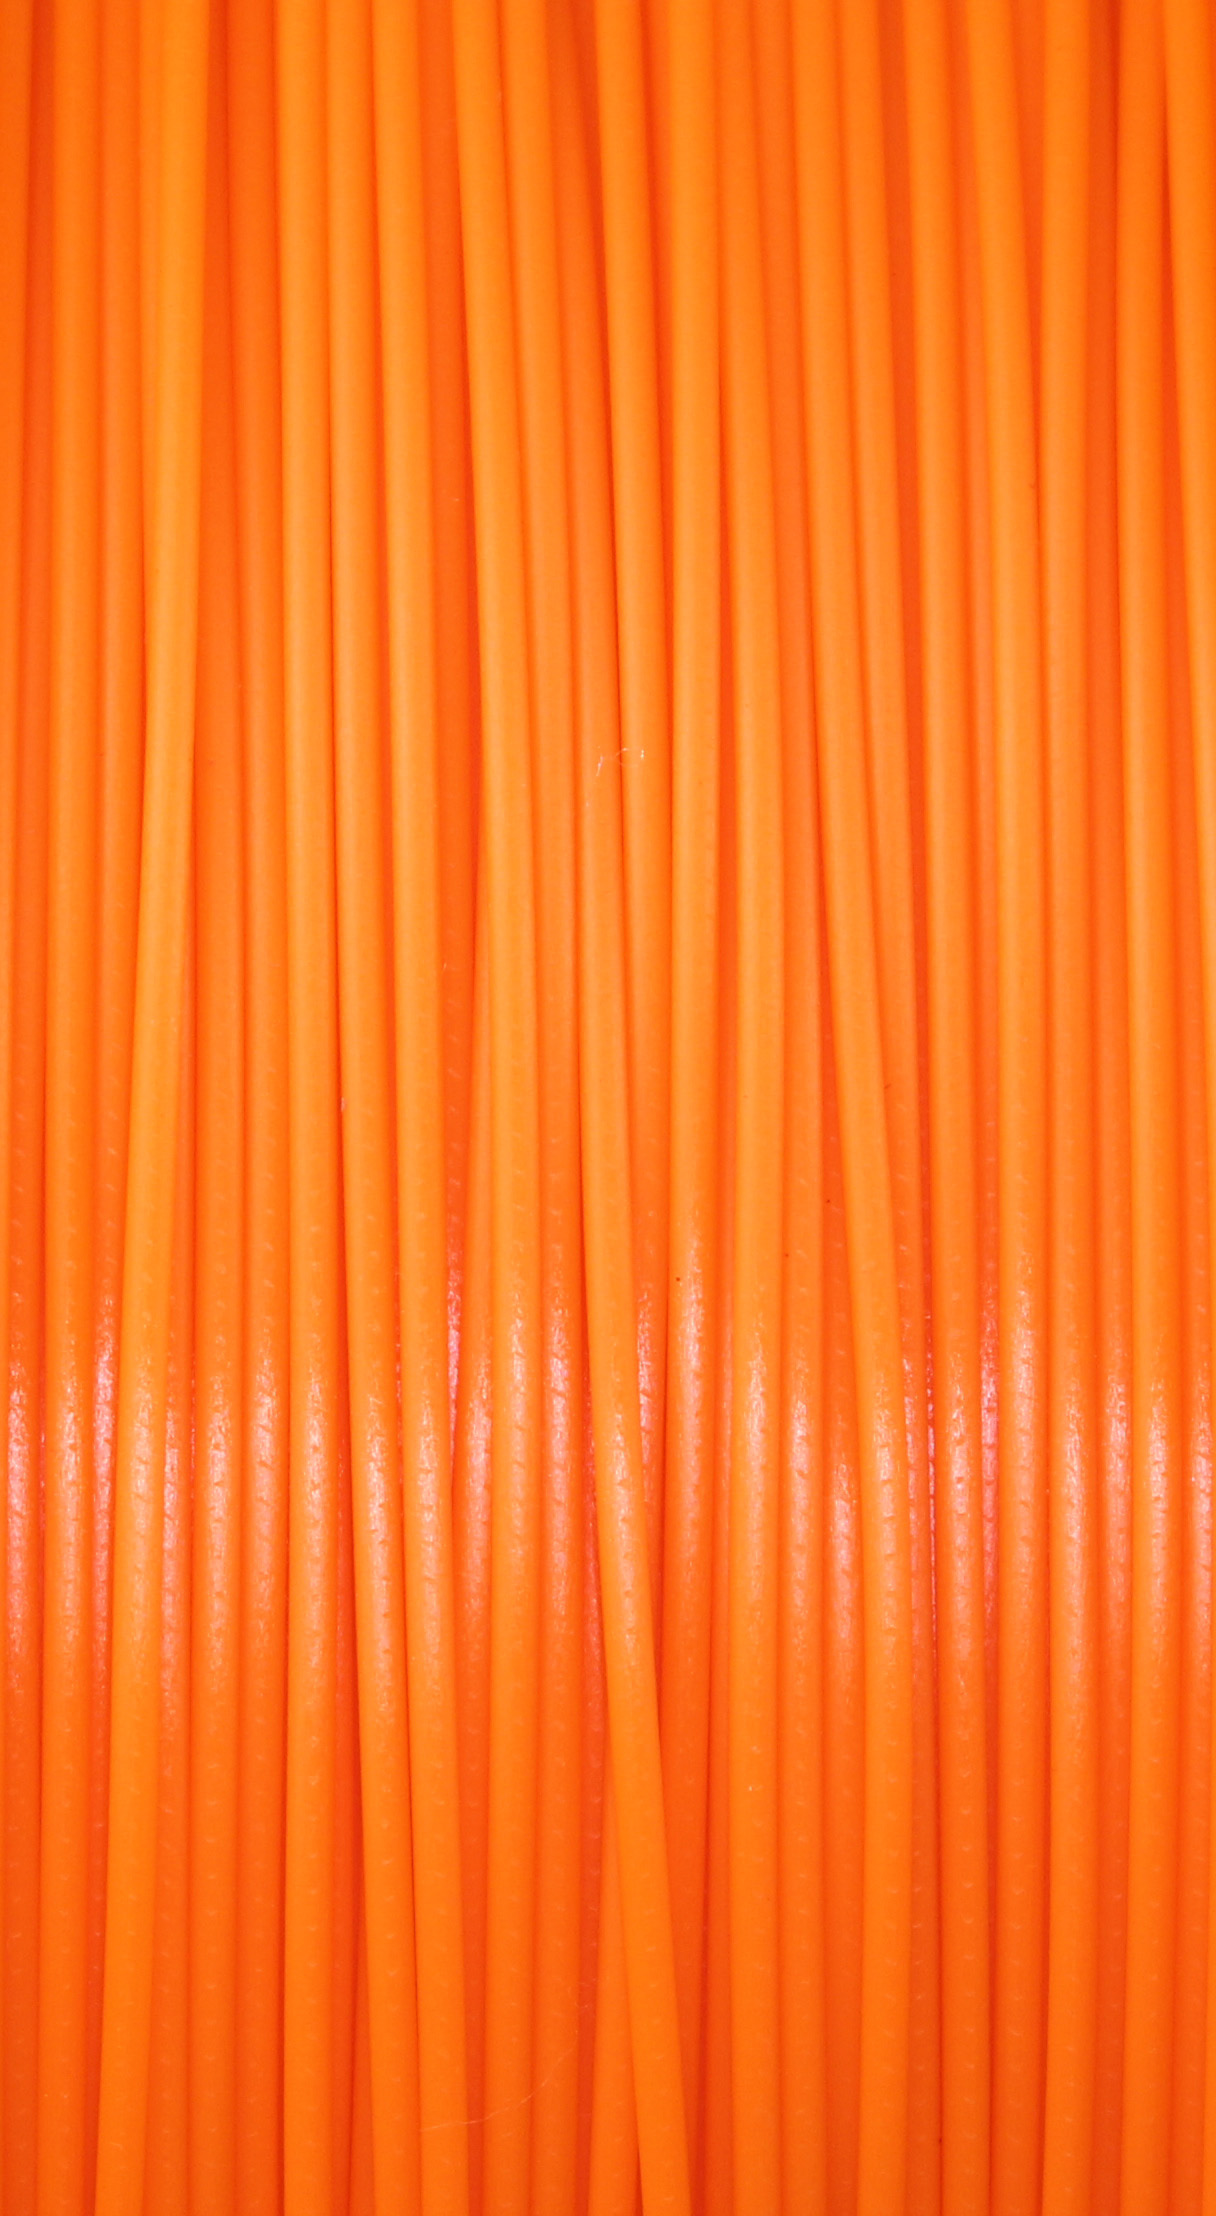 Buy this colour in the Filament Shop now